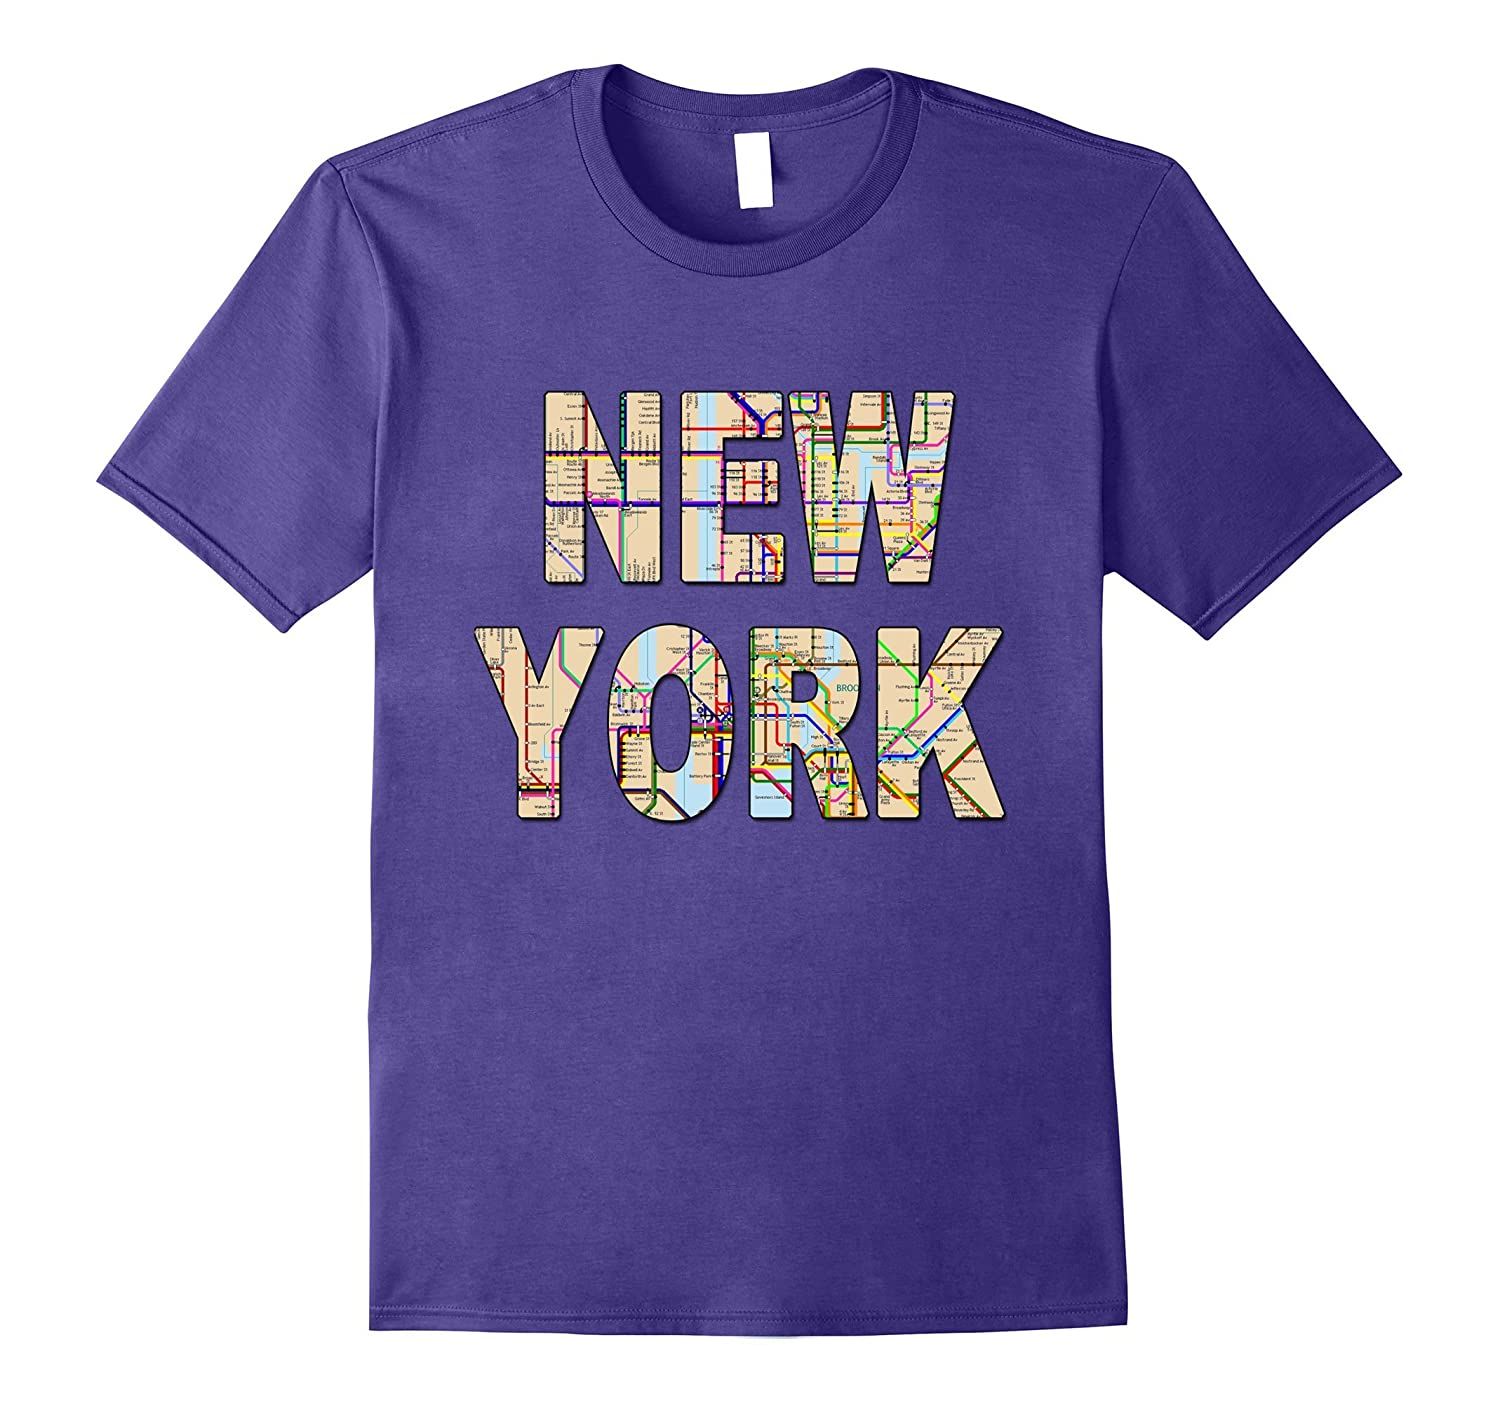 Nyc Subway Map T Shirt.New York City Subway Map T Shirt Awsome Cool Nyc Tee Shirt Th